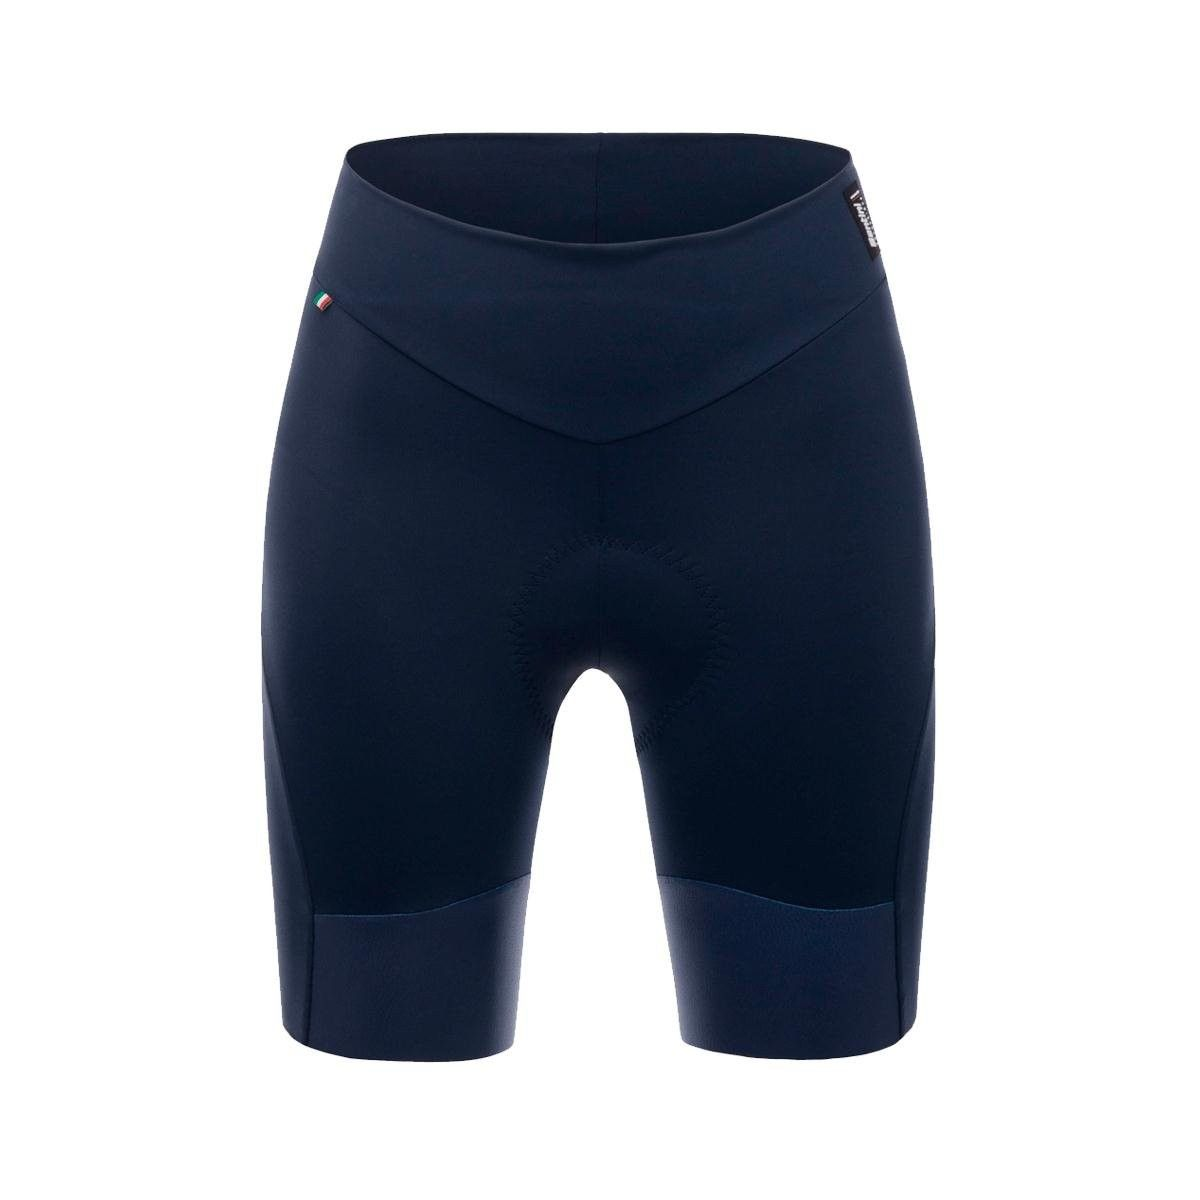 Alba Shorts - Acqua Blue - CI188ANLYDQ - Sports & Fitness Clothing, Women, Compression, Compression...